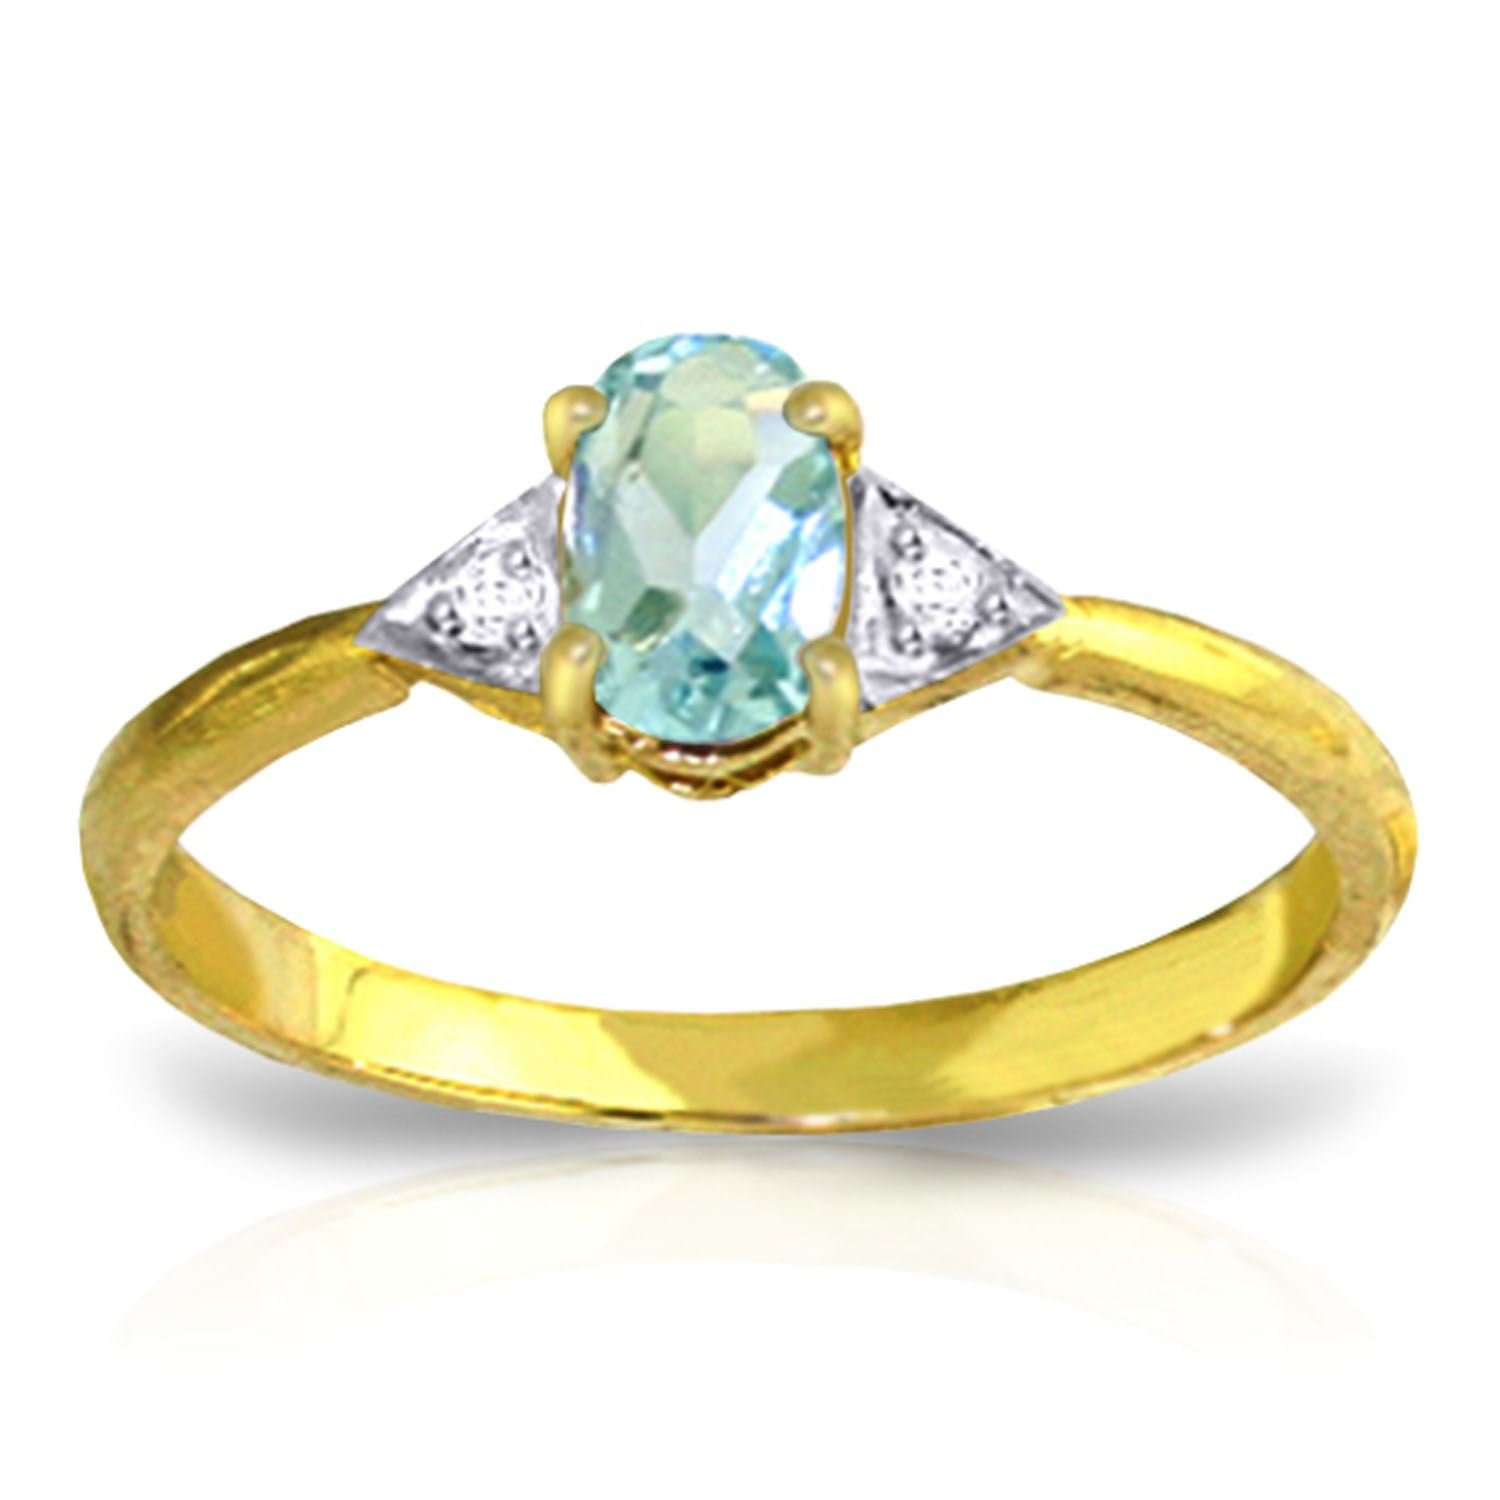 ALARRI 0.46 CTW 14K Solid Gold Being In Love Aquamarine Diamond Ring With Ring Size 5.5